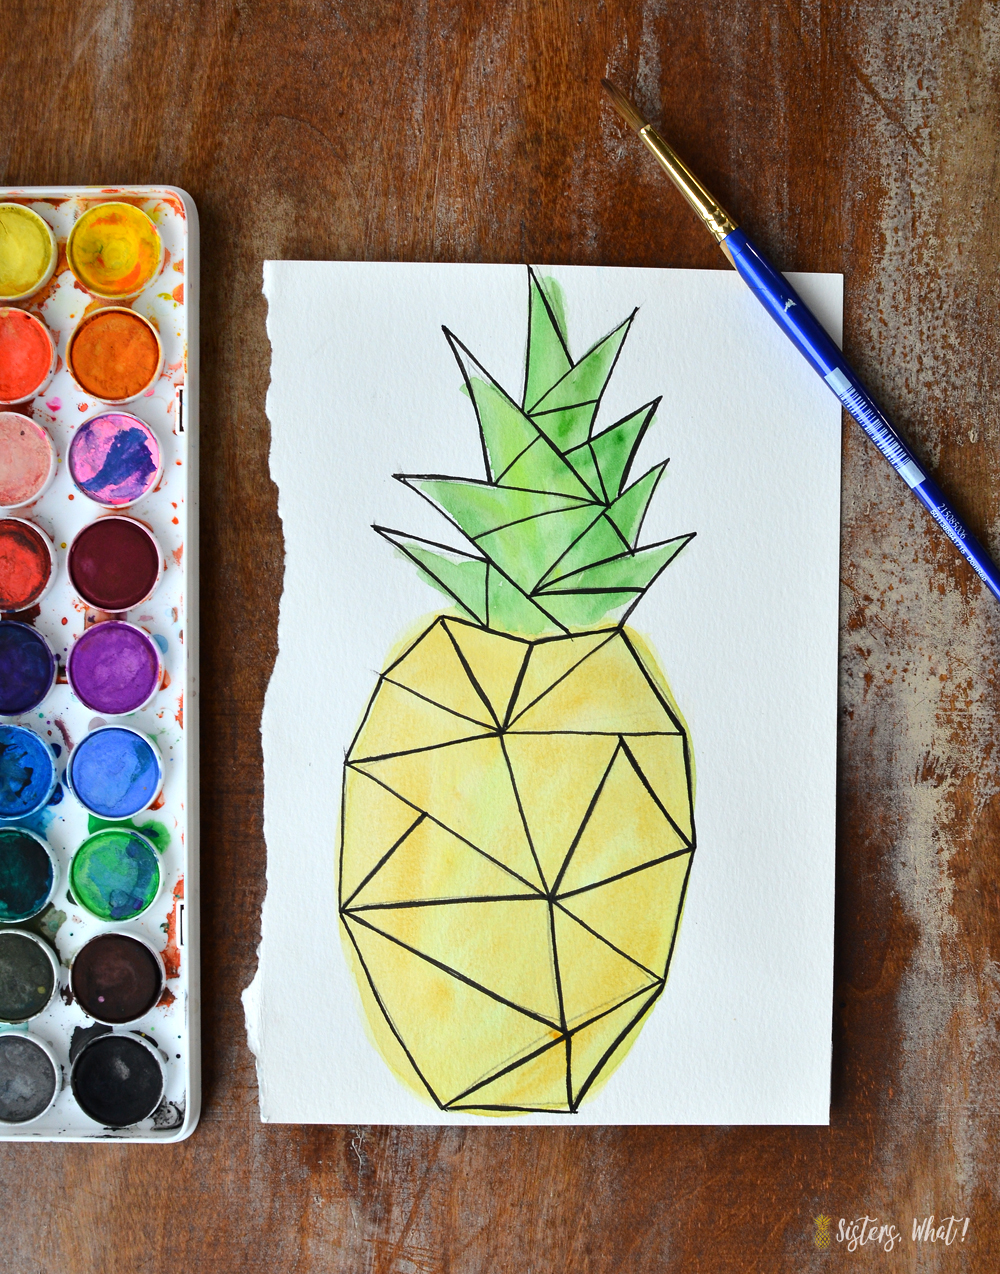 Download this free geometric watercolor 5x7 or card printable